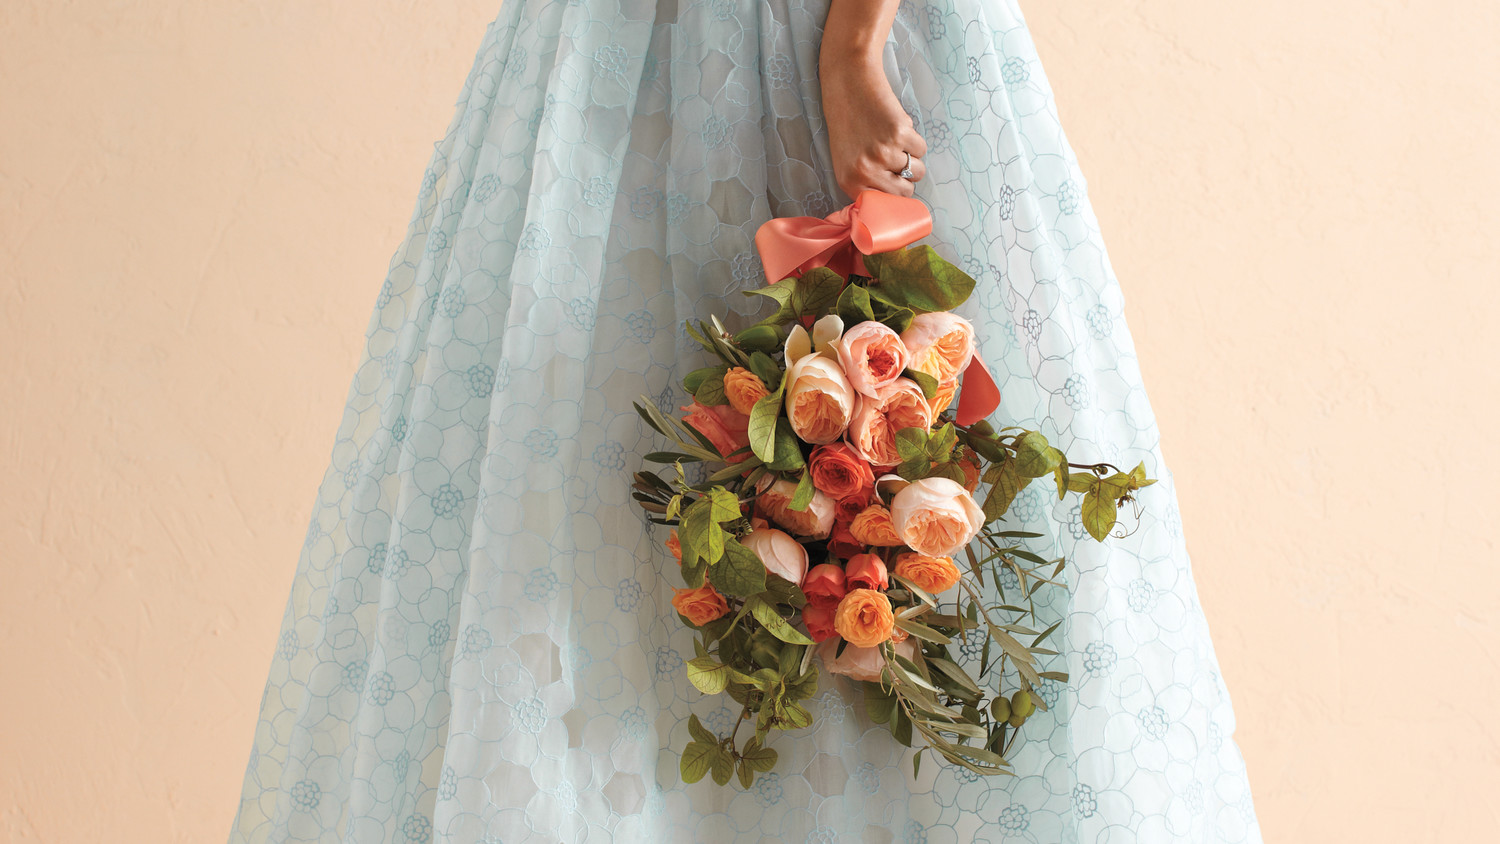 Martha Stewart Weddings: 10 Reasons To Consider Cornflower Blue And Melon For Your